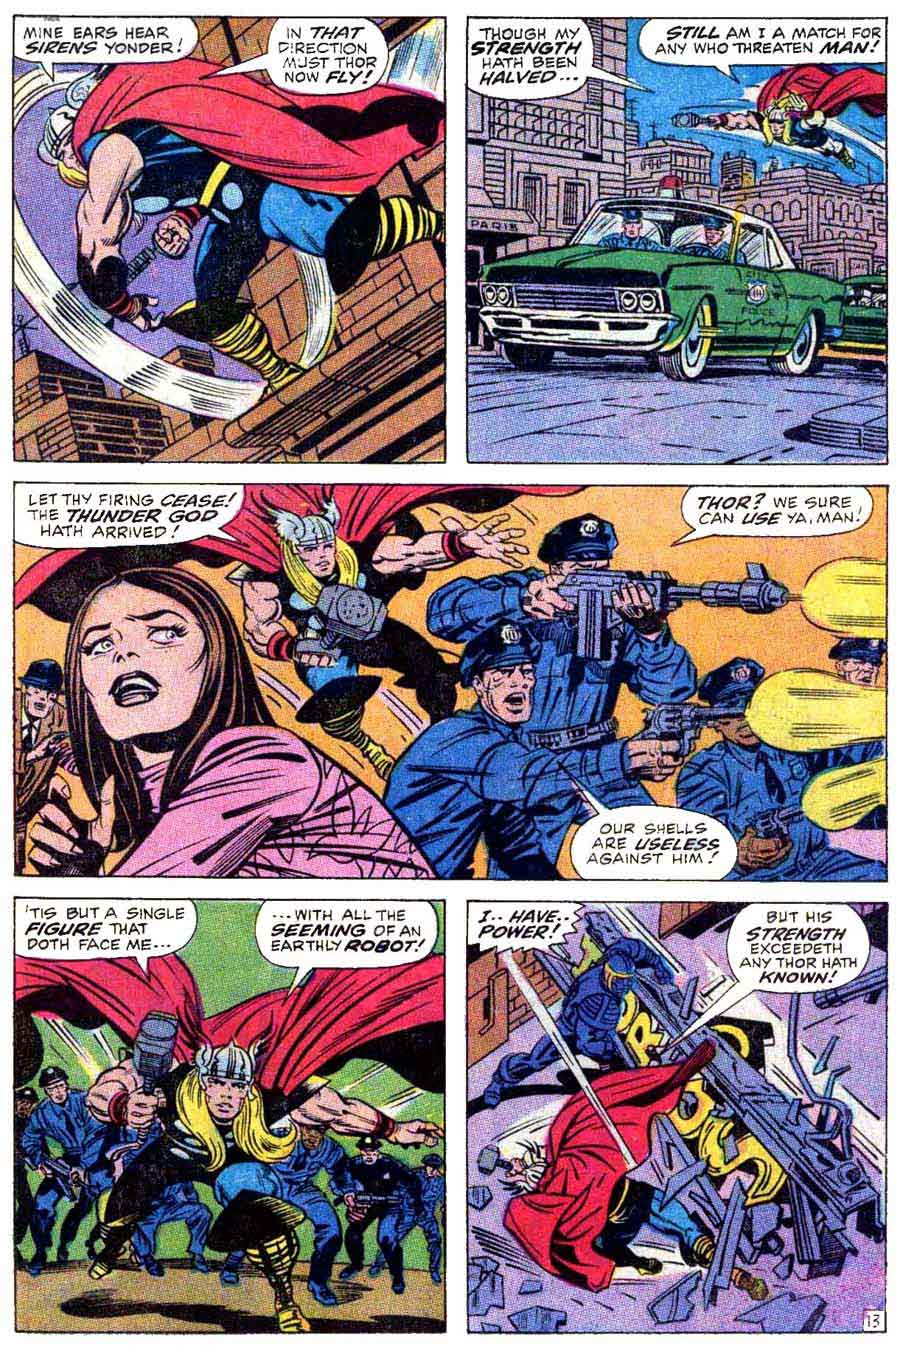 Thor v1 #174 marvel comic book page art by Jack Kirby, Bill Everett